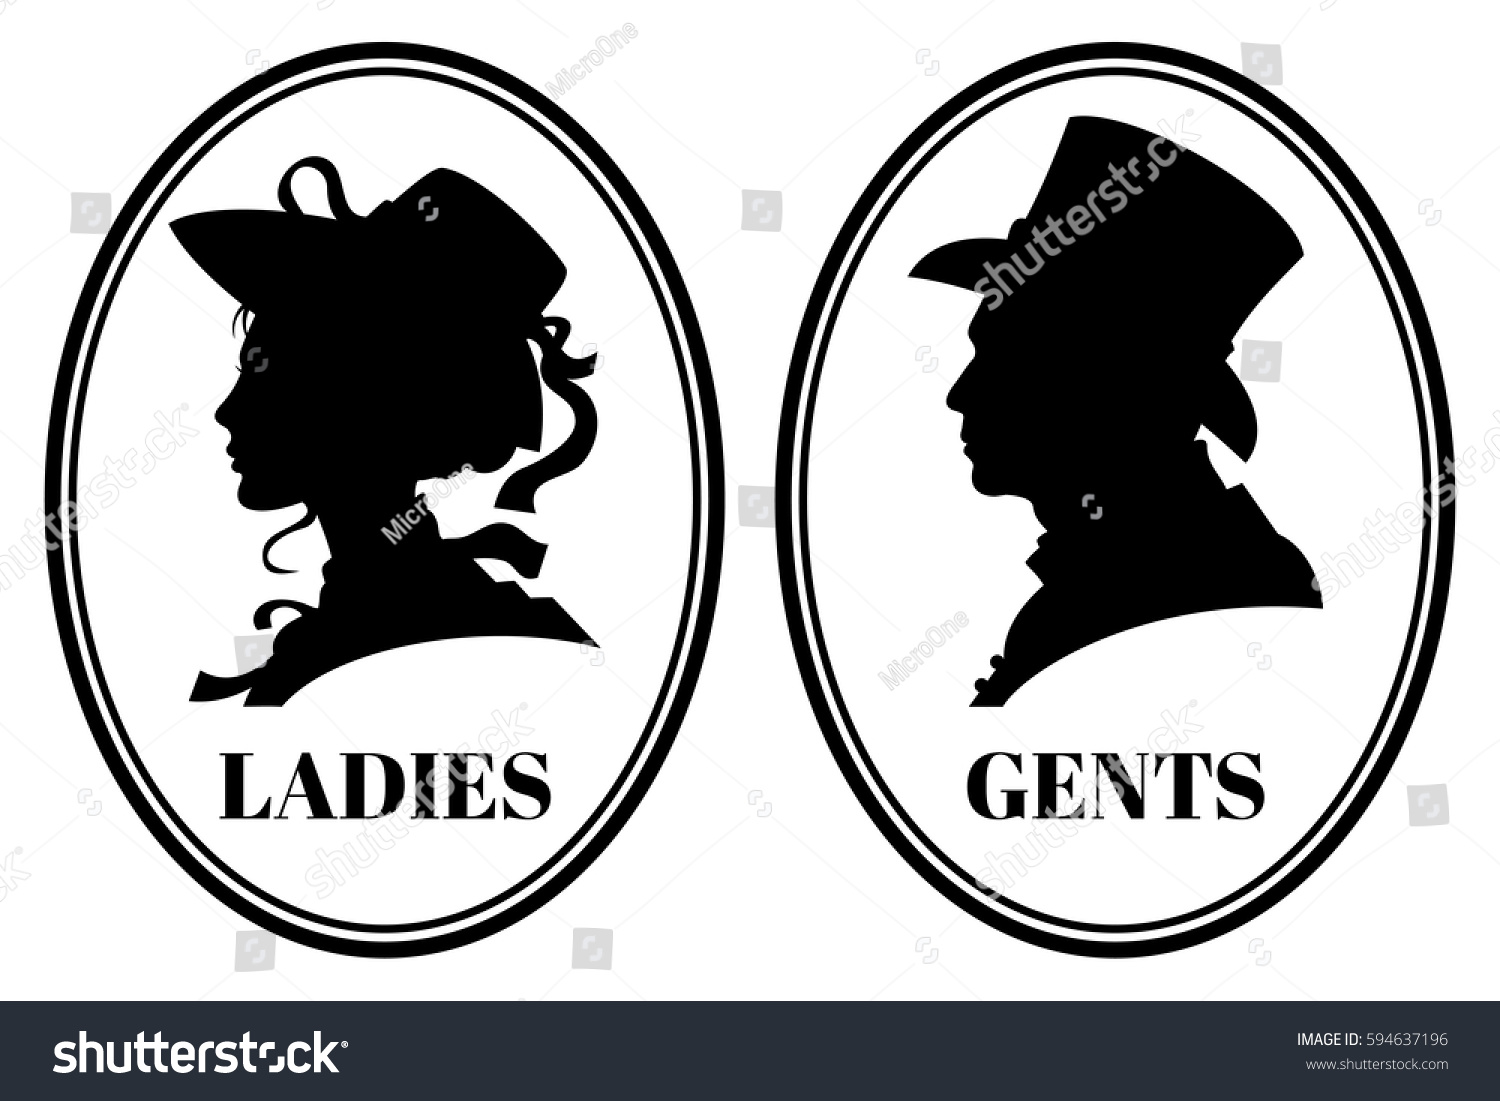 vintage toilet wc vector sign lady stock vector 594637196 shutterstock. Black Bedroom Furniture Sets. Home Design Ideas